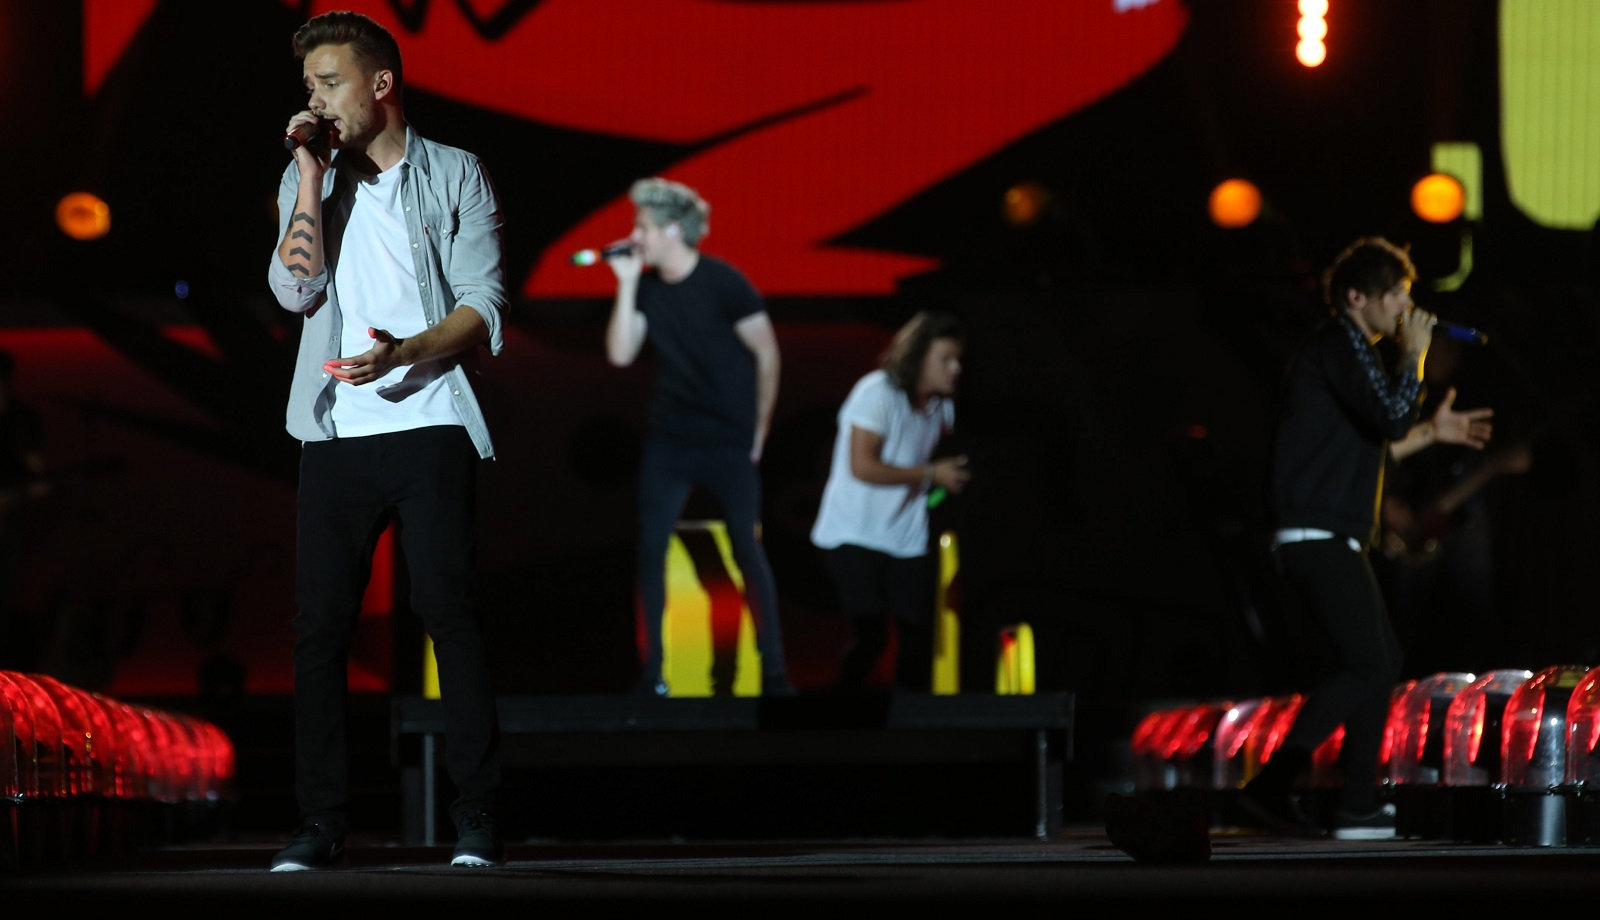 One Direction performs at Ralph Wilson Stadium in Orchard Park, Thursday, Sept. 3, 2015. On left is Liam Payne.  (Sharon Cantillon/Buffalo News)